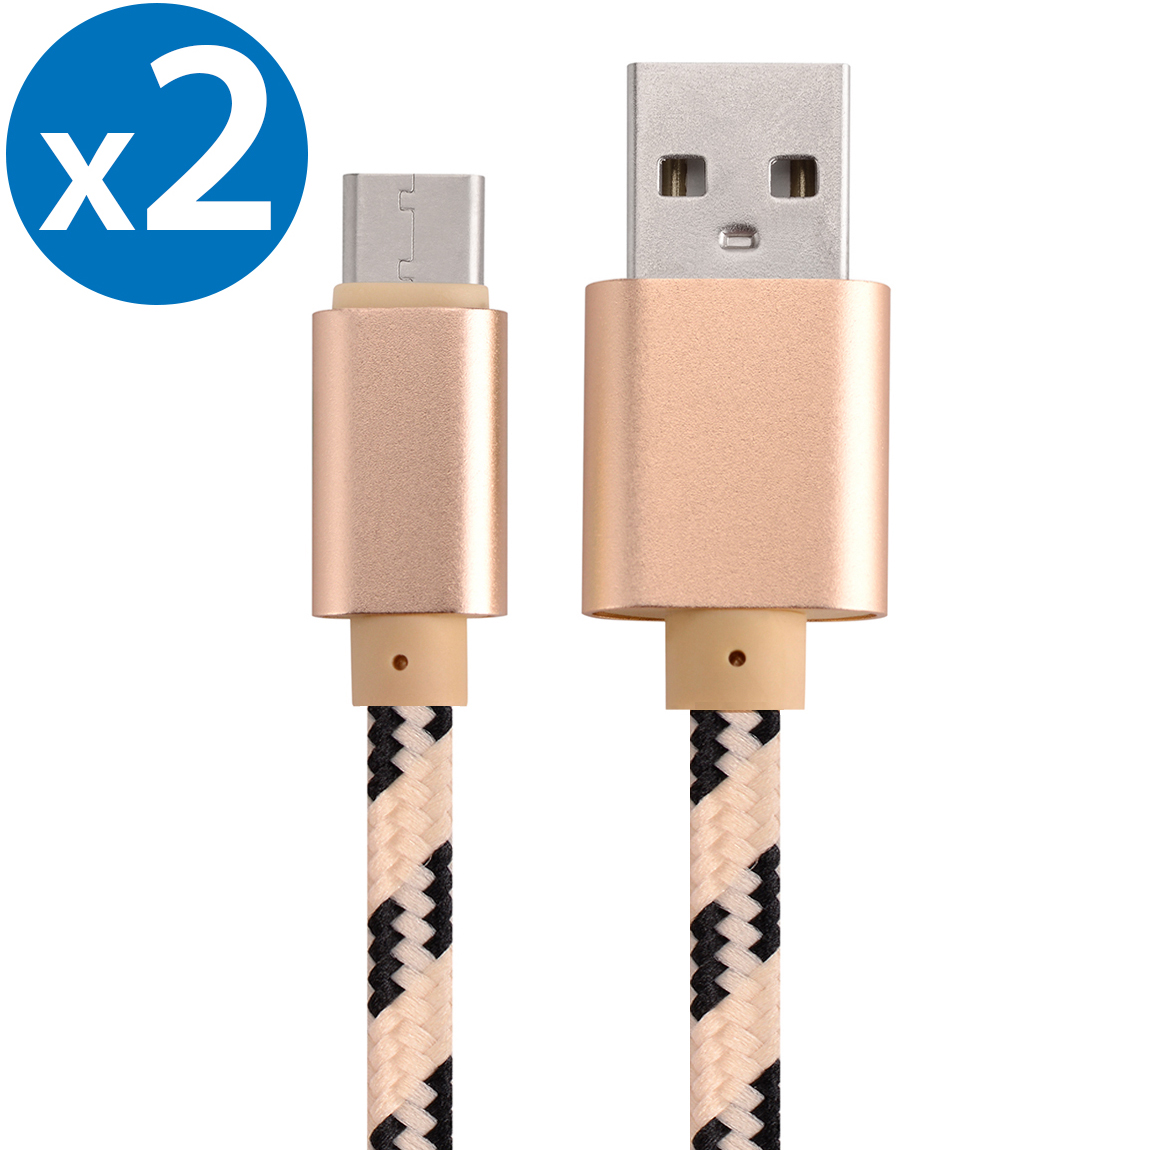 2x 3FT USB Type C Cable Fast Charging Cable USB-C Type-C 3.1 Data Sync Charger Cable Cord For Samsung Galaxy S9 S9+ Galaxy S8 S8 Plus Nexus 5X 6P OnePlus 2 3 LG G5 G6 V20 HTC M10 Google Pixel XL